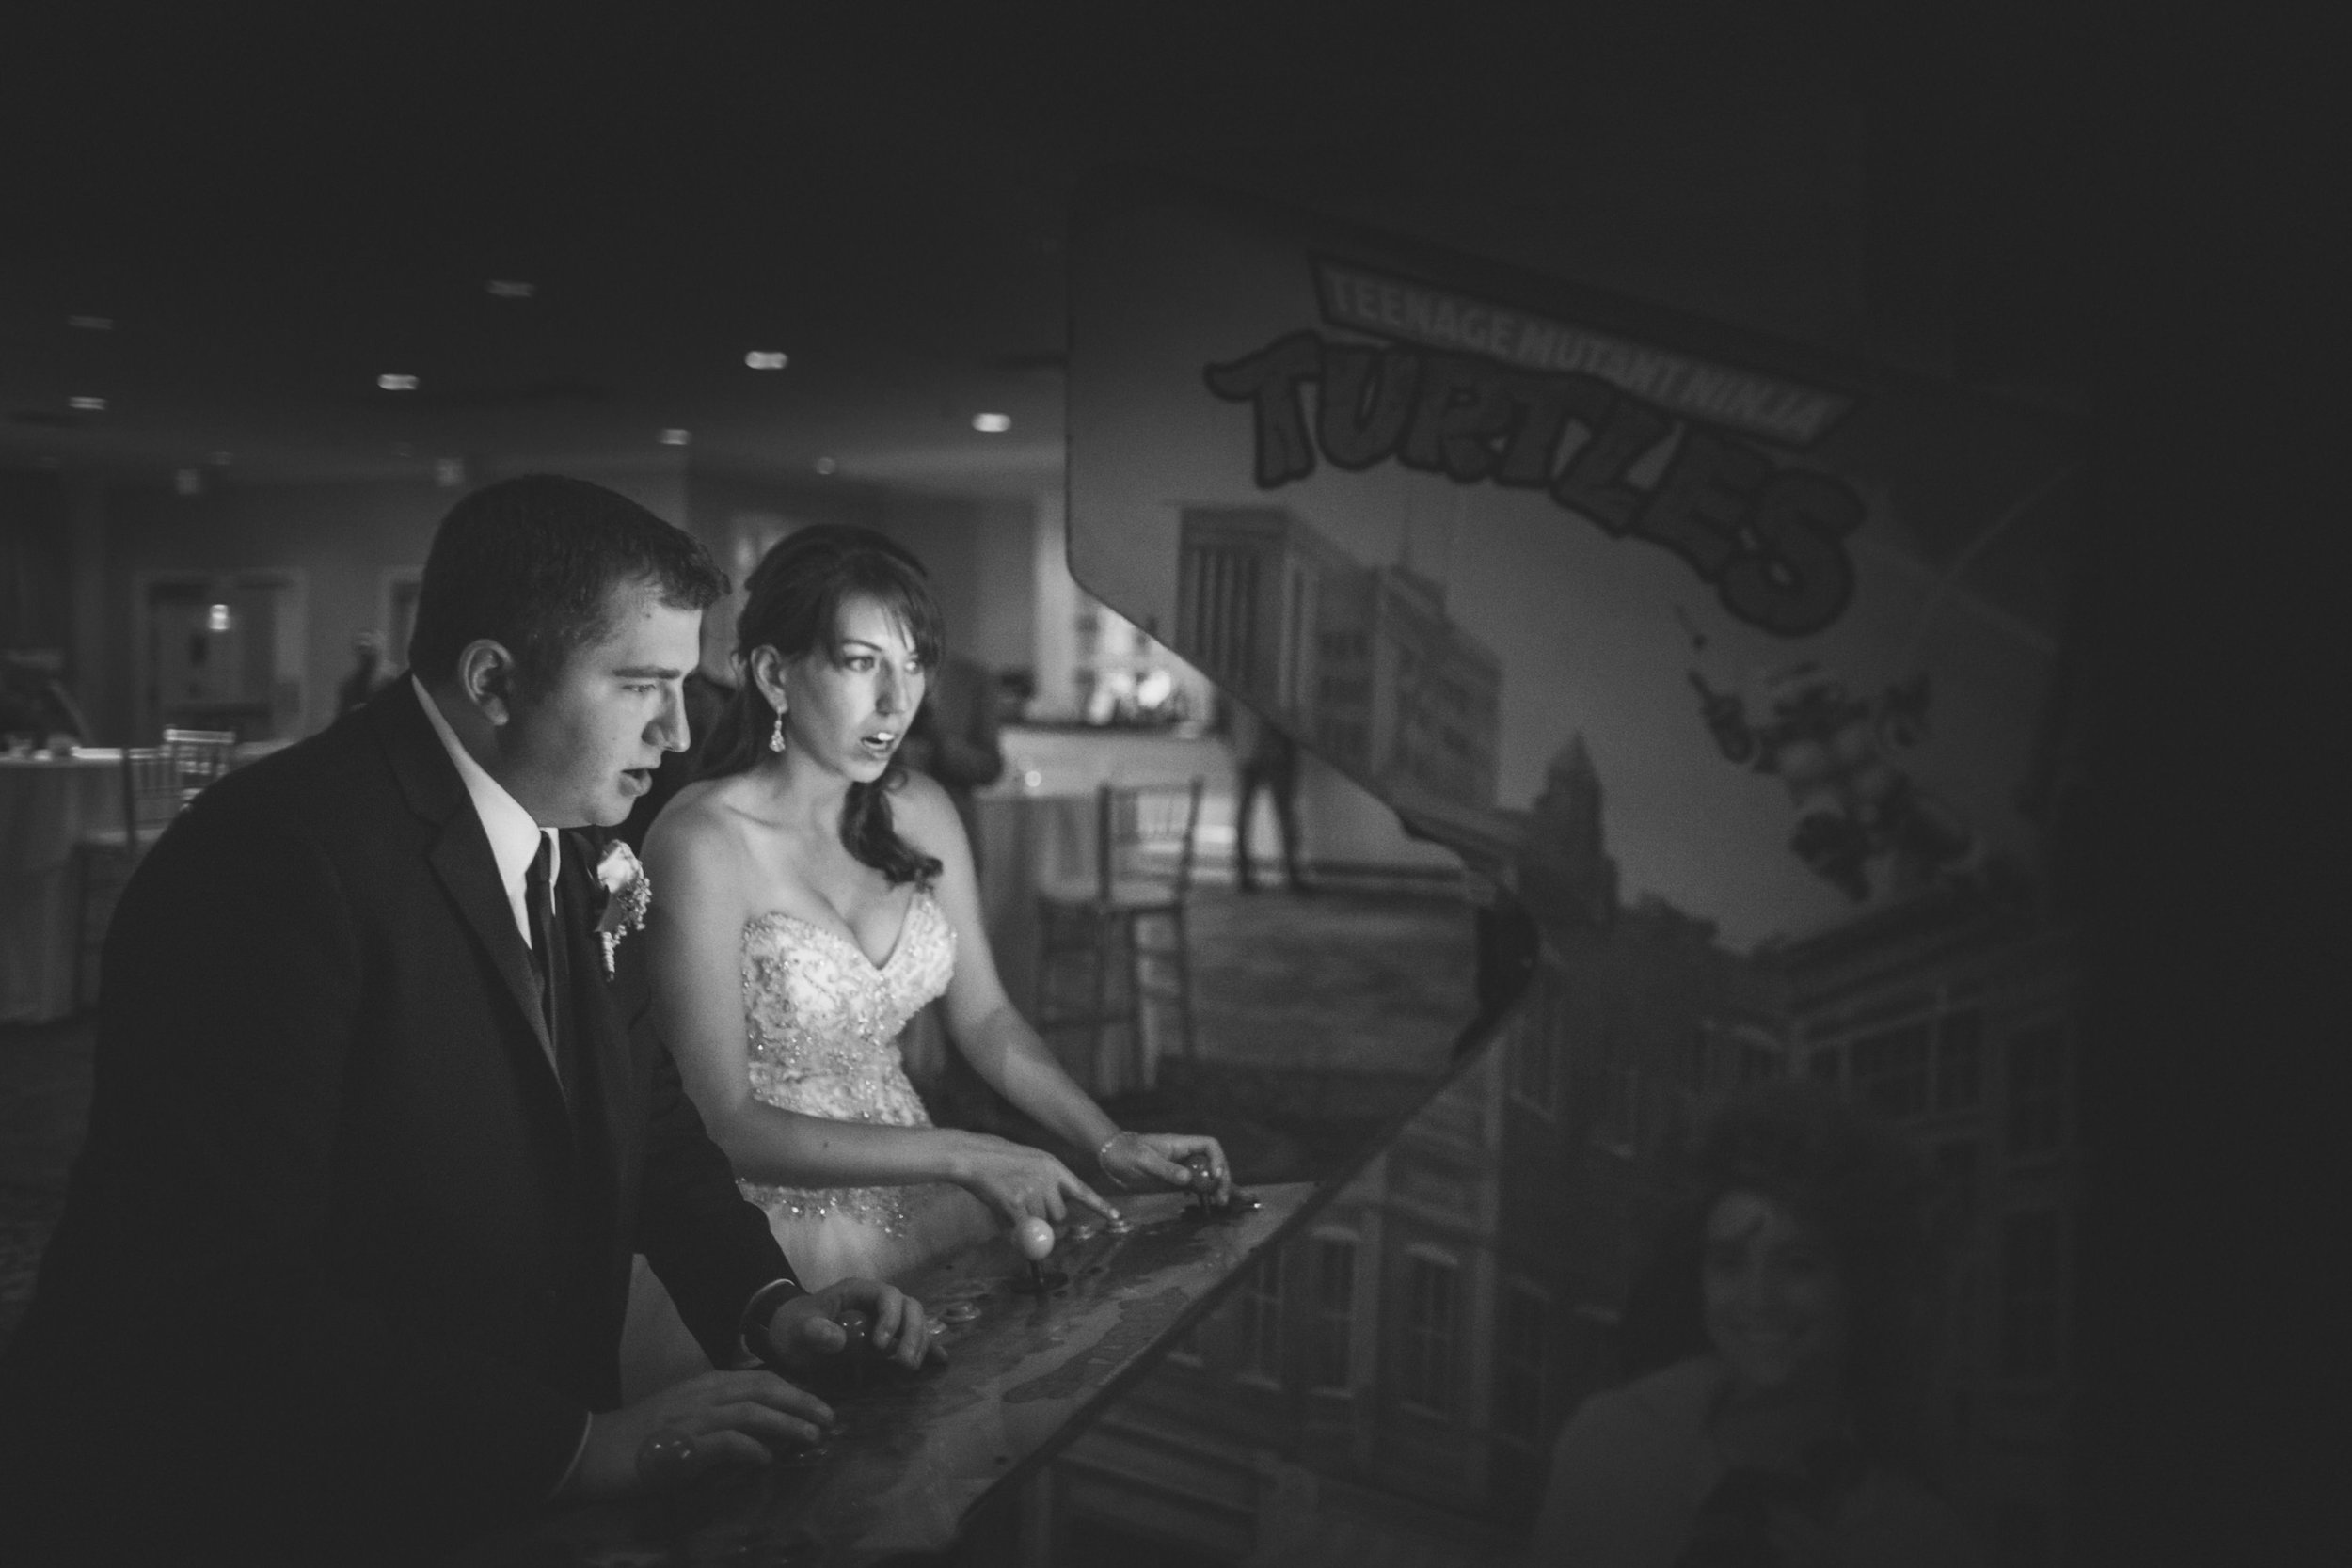 weddings-102.jpg